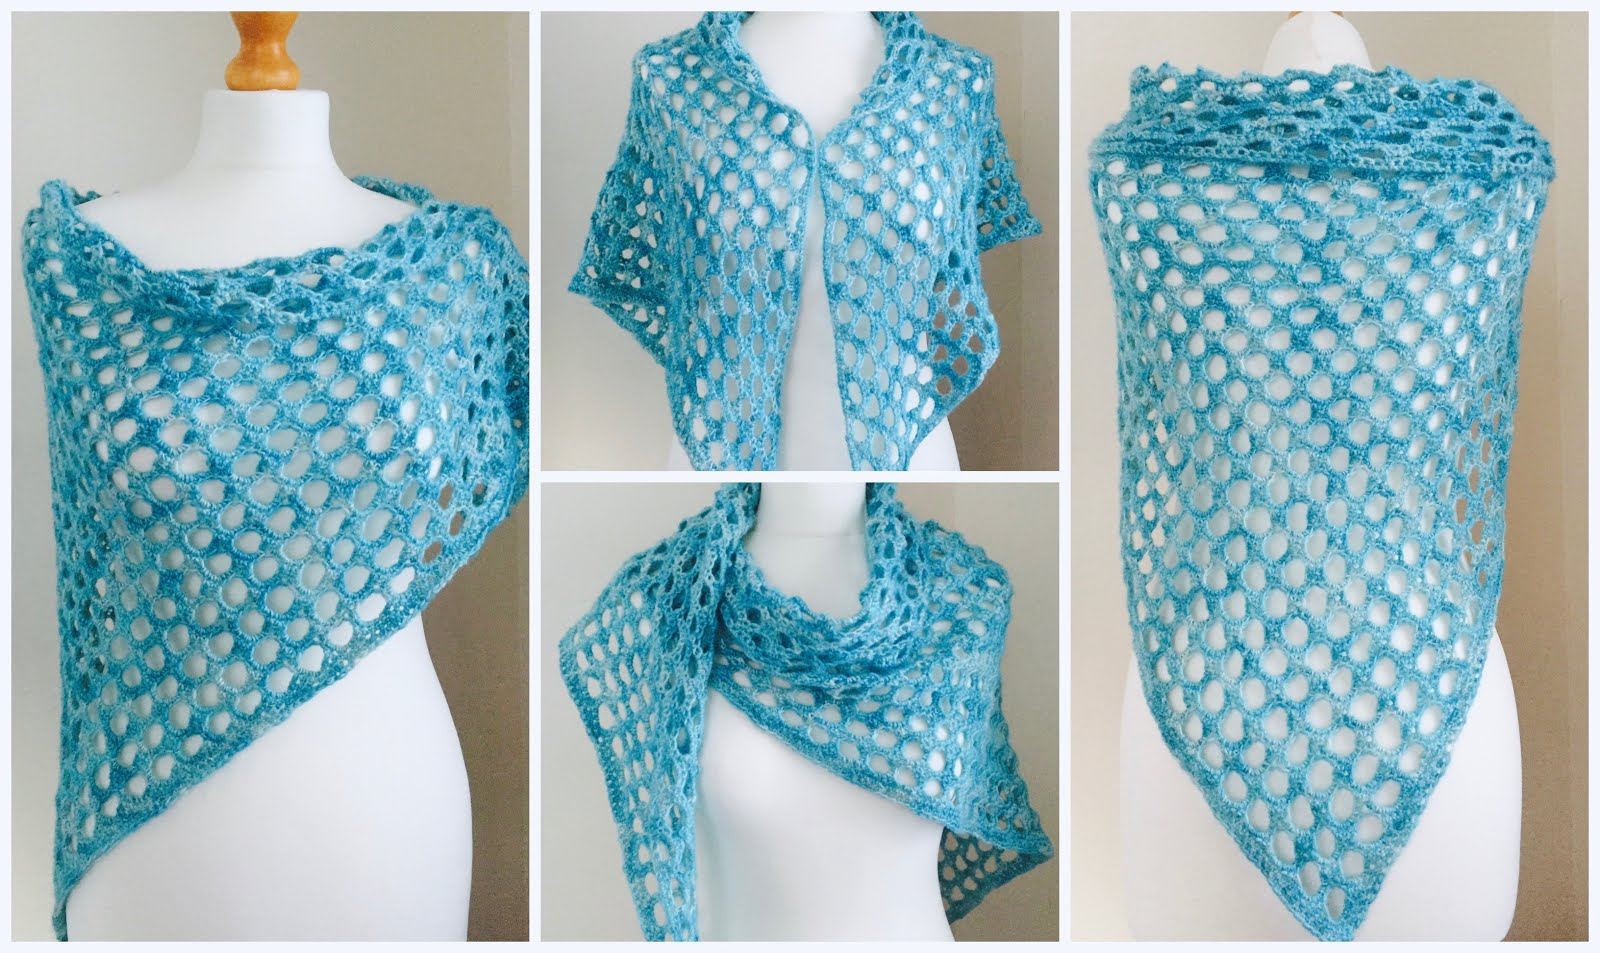 Free Pattern: \'Spirit of Summer\' Crochet Shawl | Crafts from the Cwtch